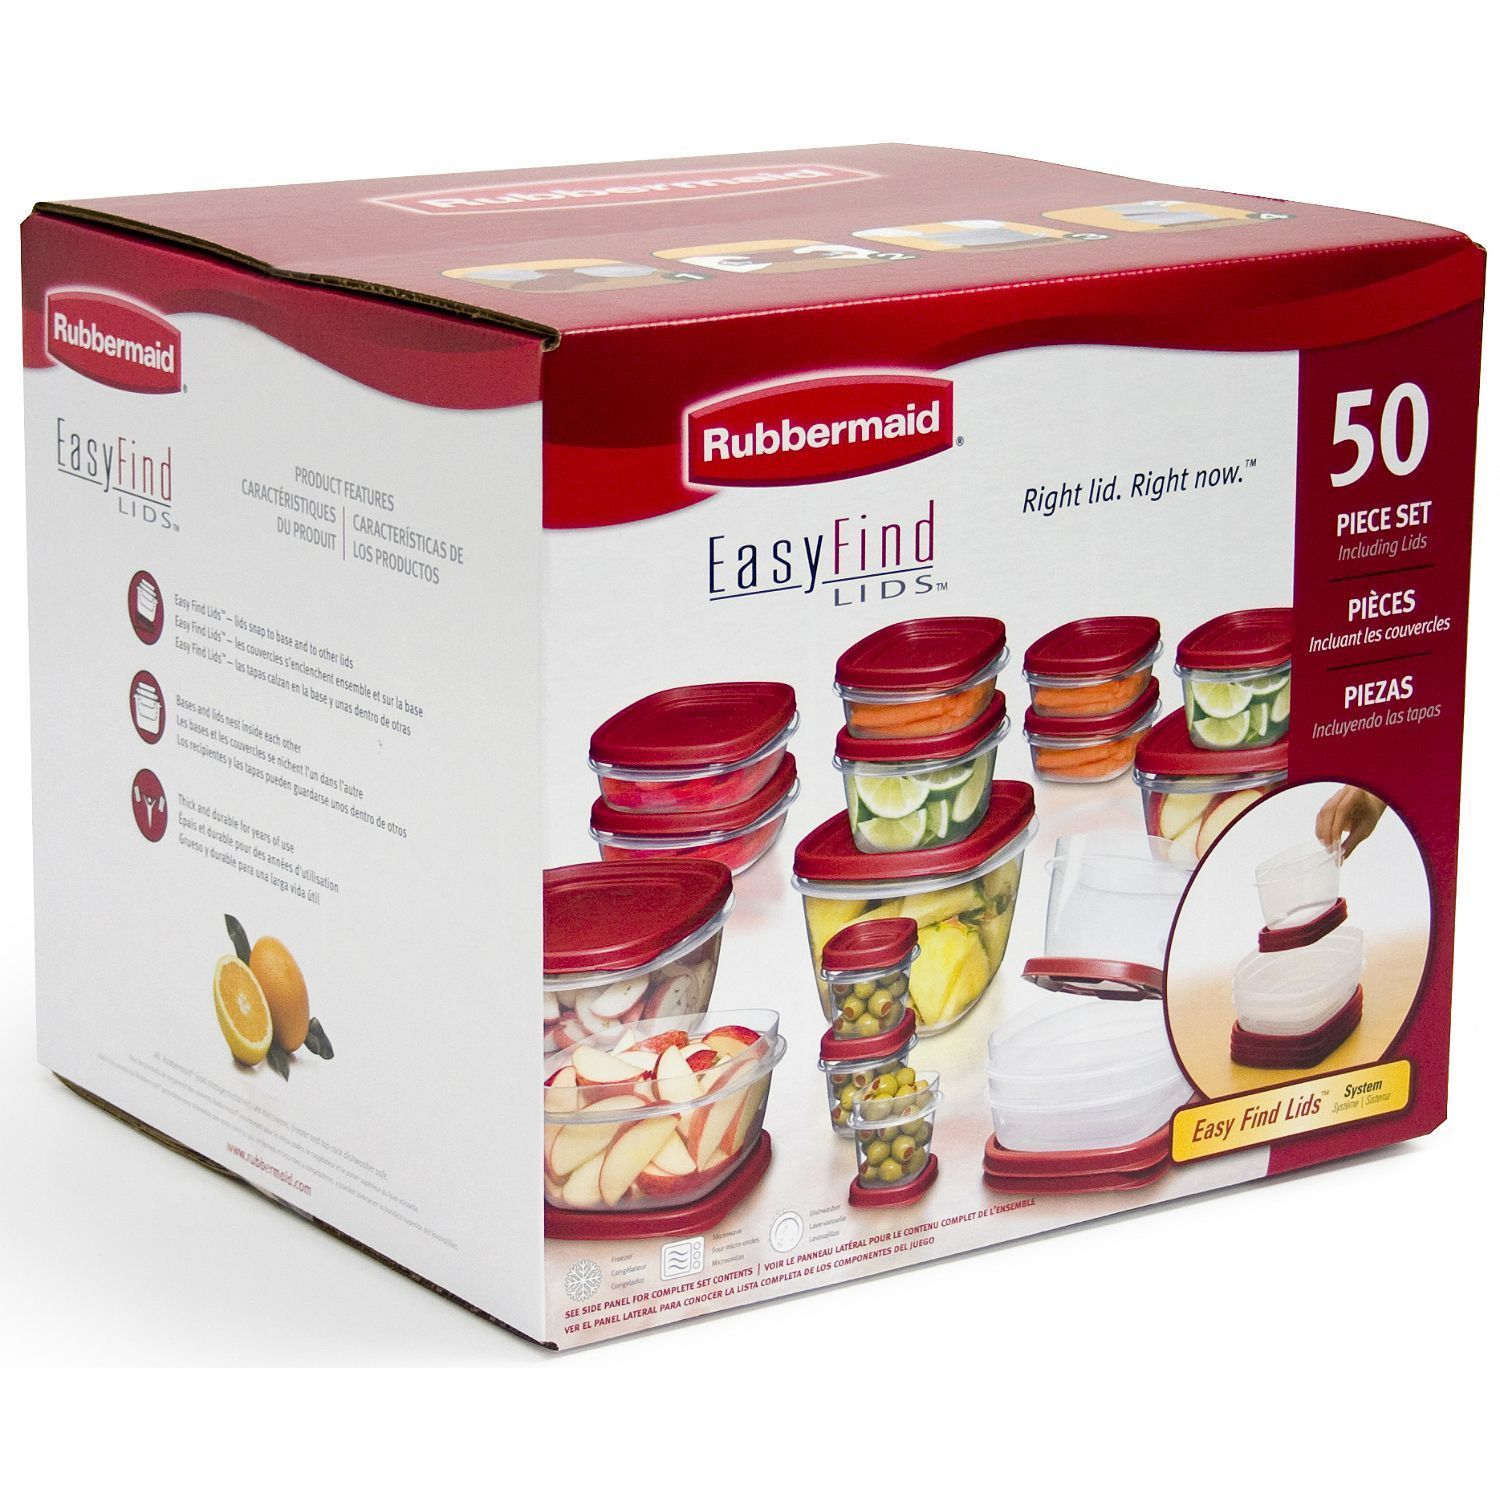 Rubbermaid Easy Find Lids Food Storage Set - 50-piece  FREE SHIPPING 1